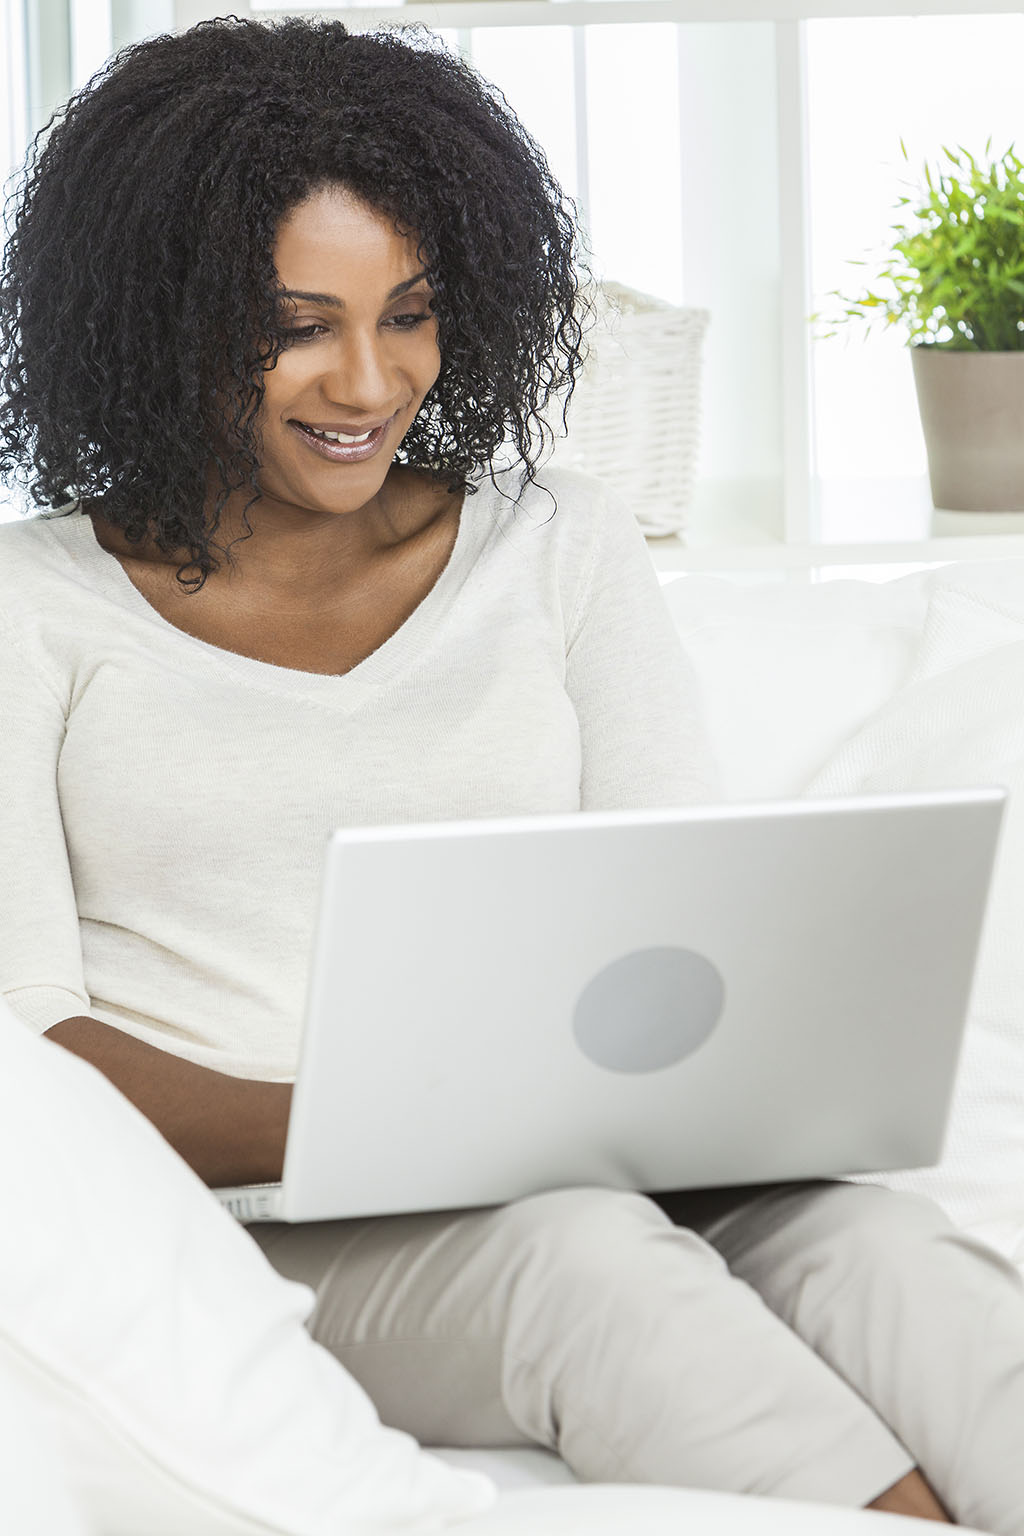 Image of a woman using a laptop